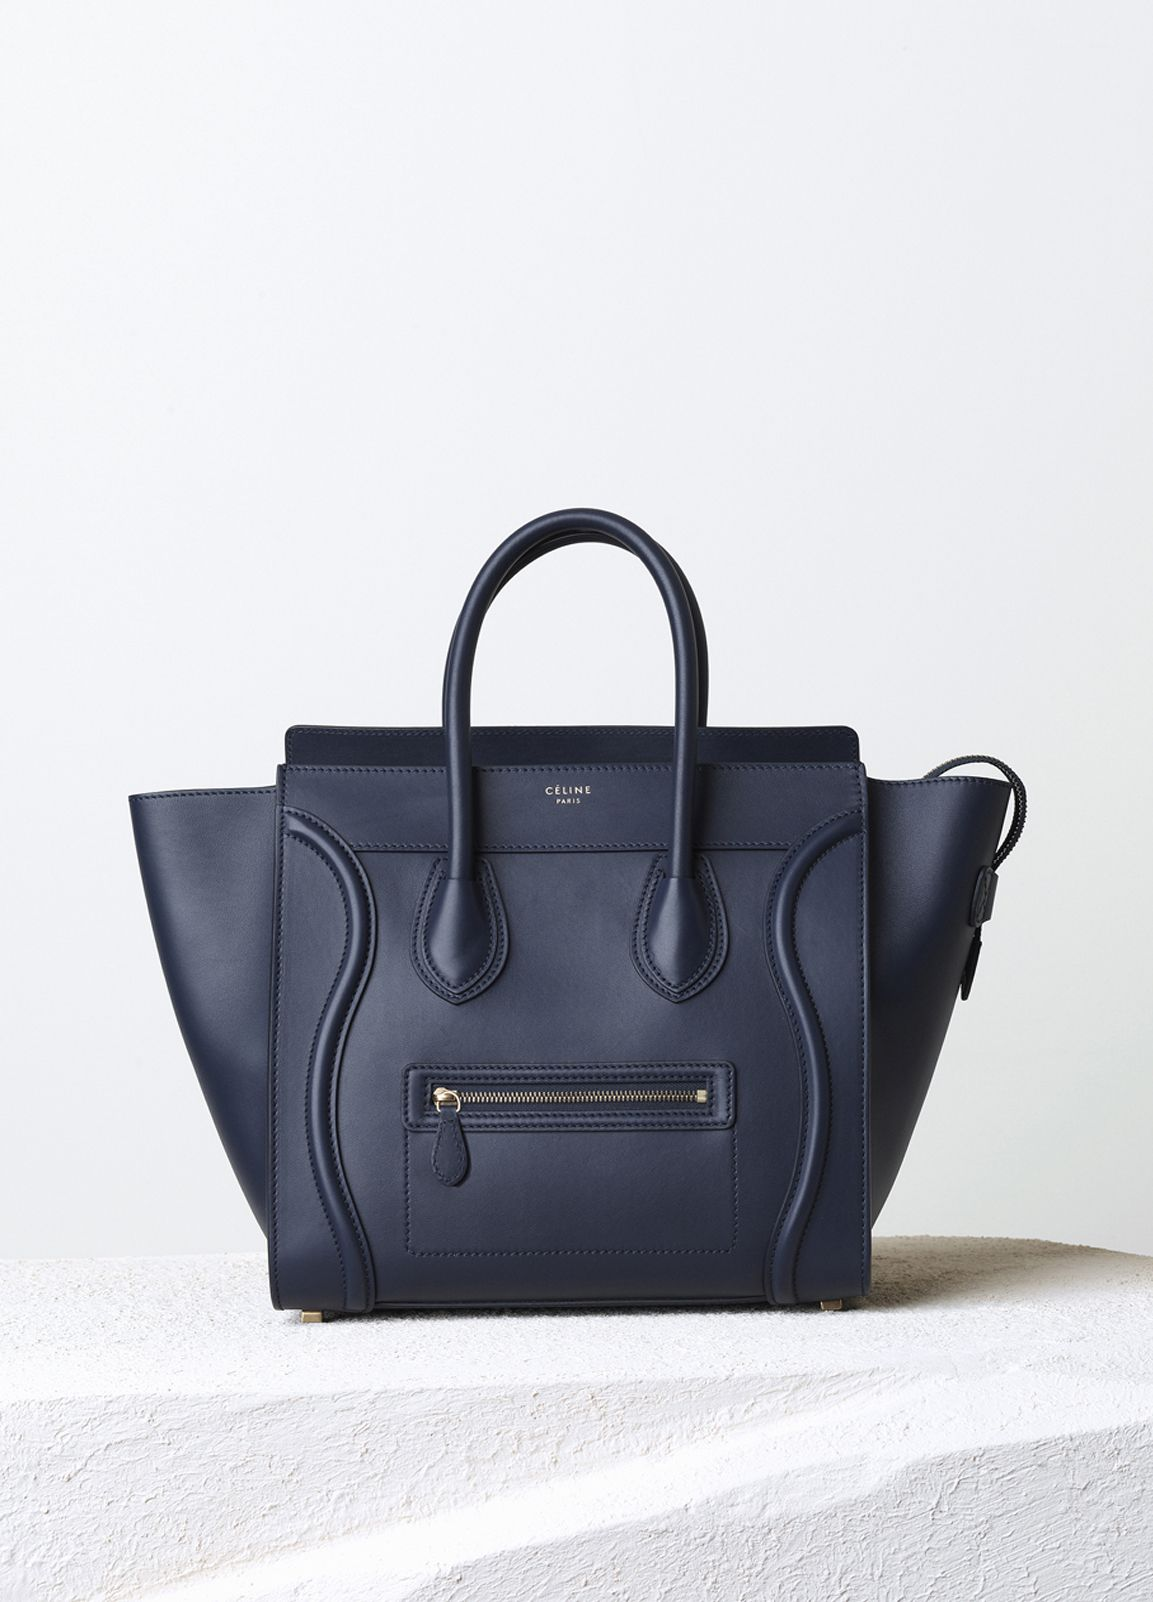 Mini Luggage Handbag in Smooth Calfskin - Fall / Winter Collection 2014 | CÉLINE. This bag has always been a must on my wish list, with the shape and the sleek classic black!